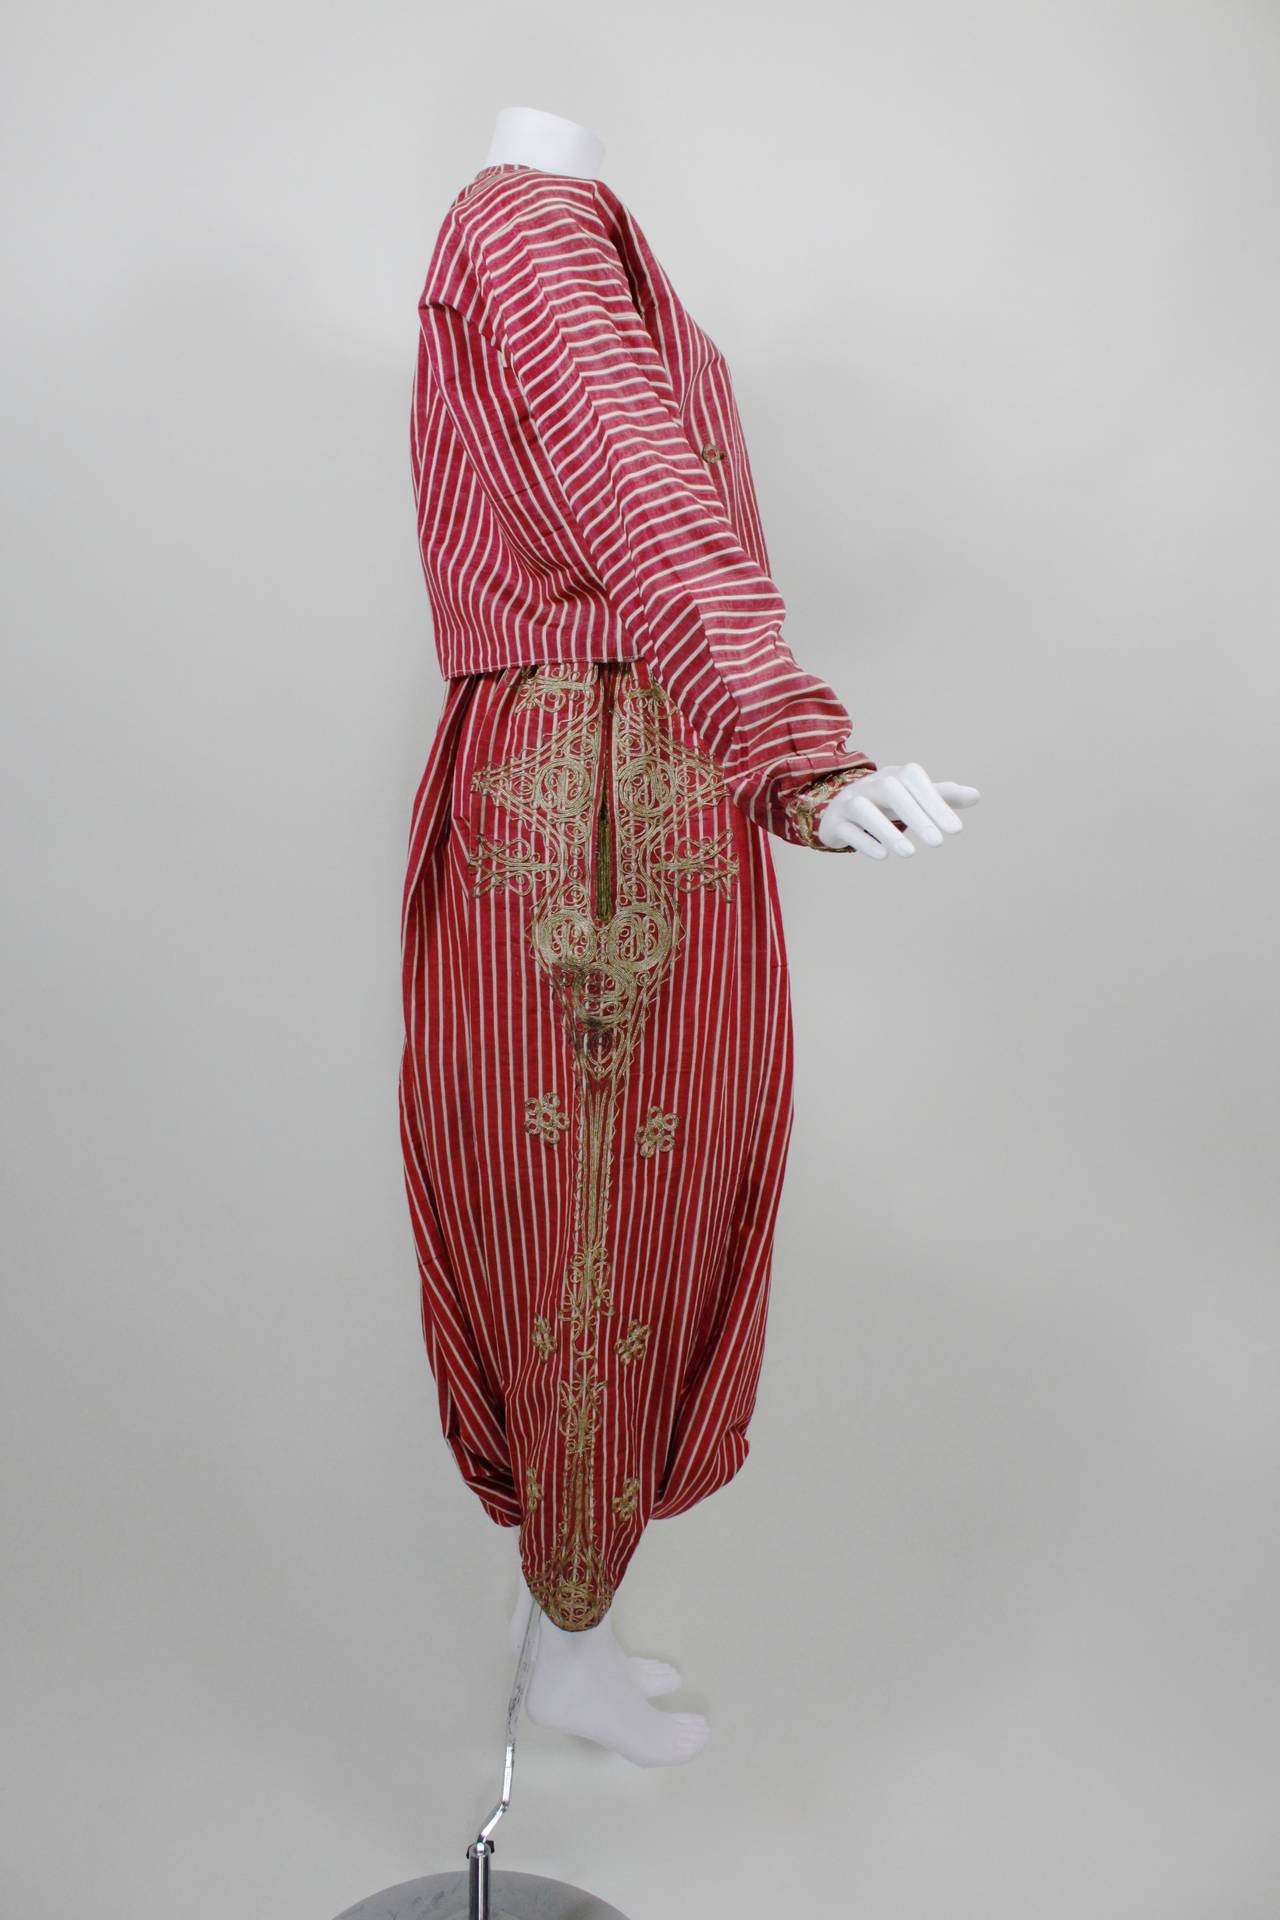 Turkish Silk Moire Striped Harem Pant Ensemble with Bullion Embroidery 4